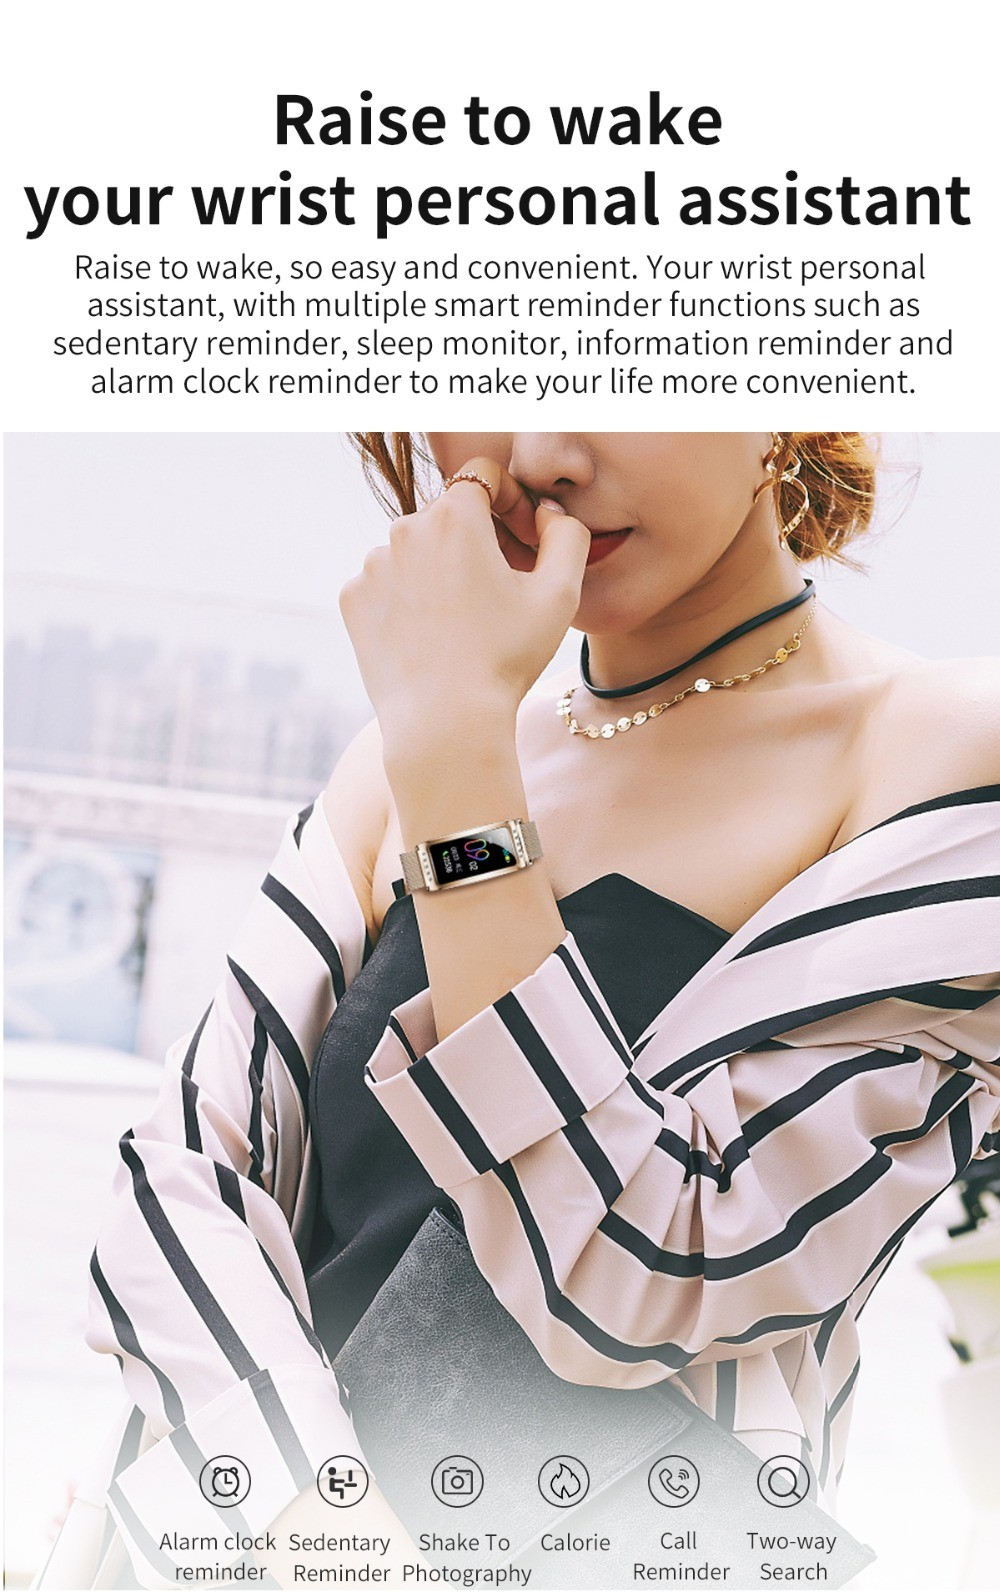 F28 Smart Bracelet Wristband Raise to wake your wrist personal assistant